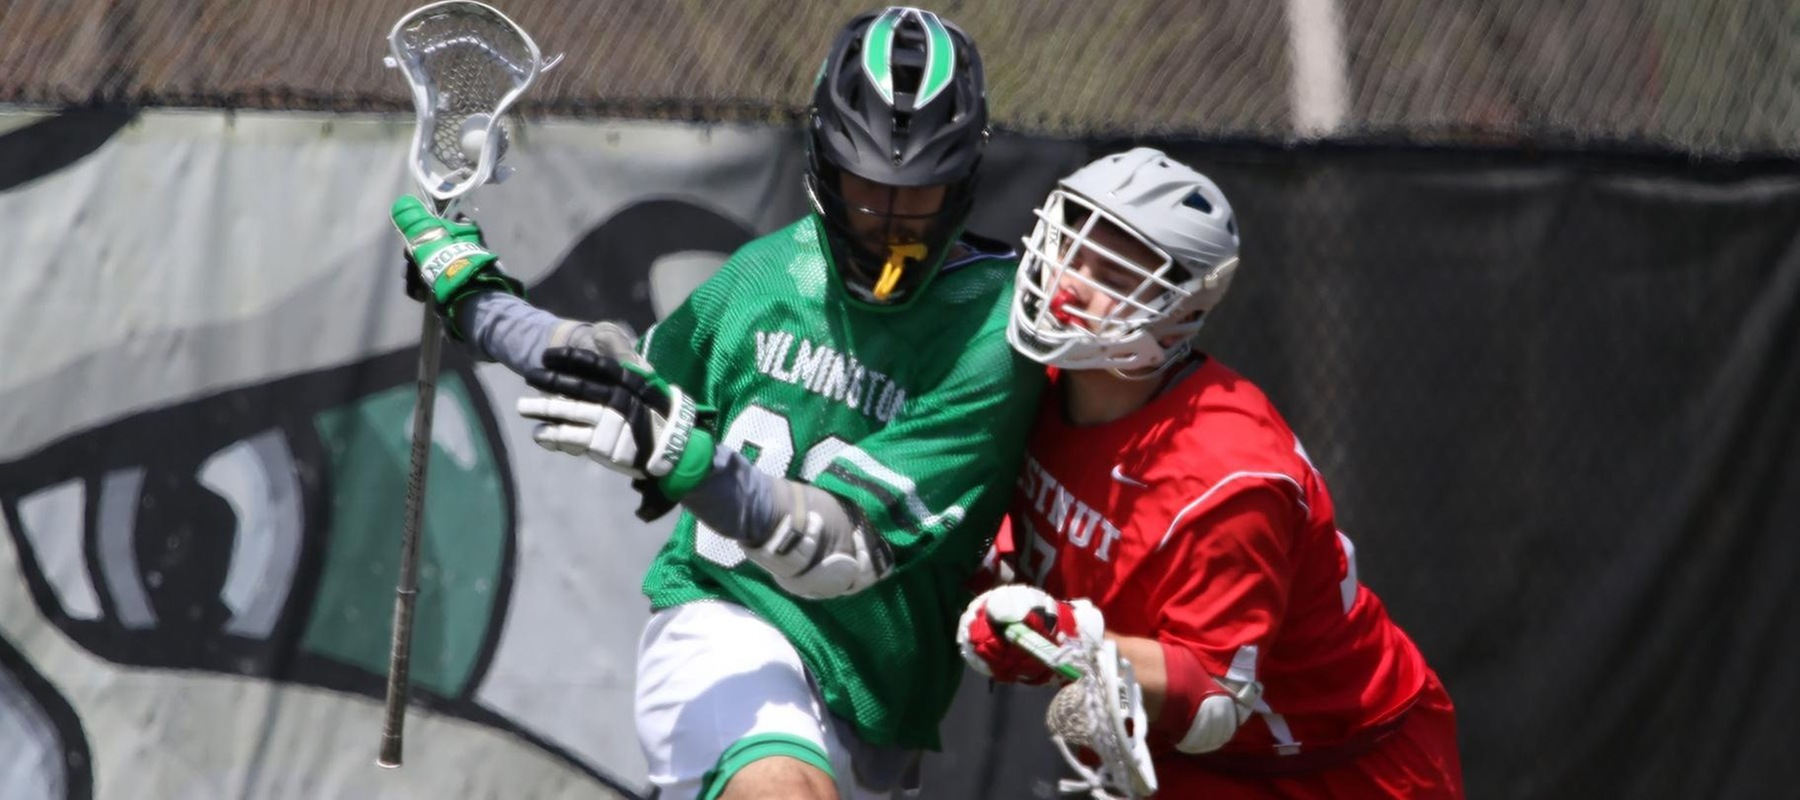 Copyright 2018; Wilmington University. All rights reserved. File photo of Dylan McCleaft who scored twice and added four assists at Montreat. Photo by Frank Stallworth. April 21, 2018 vs. Chestnut Hill.